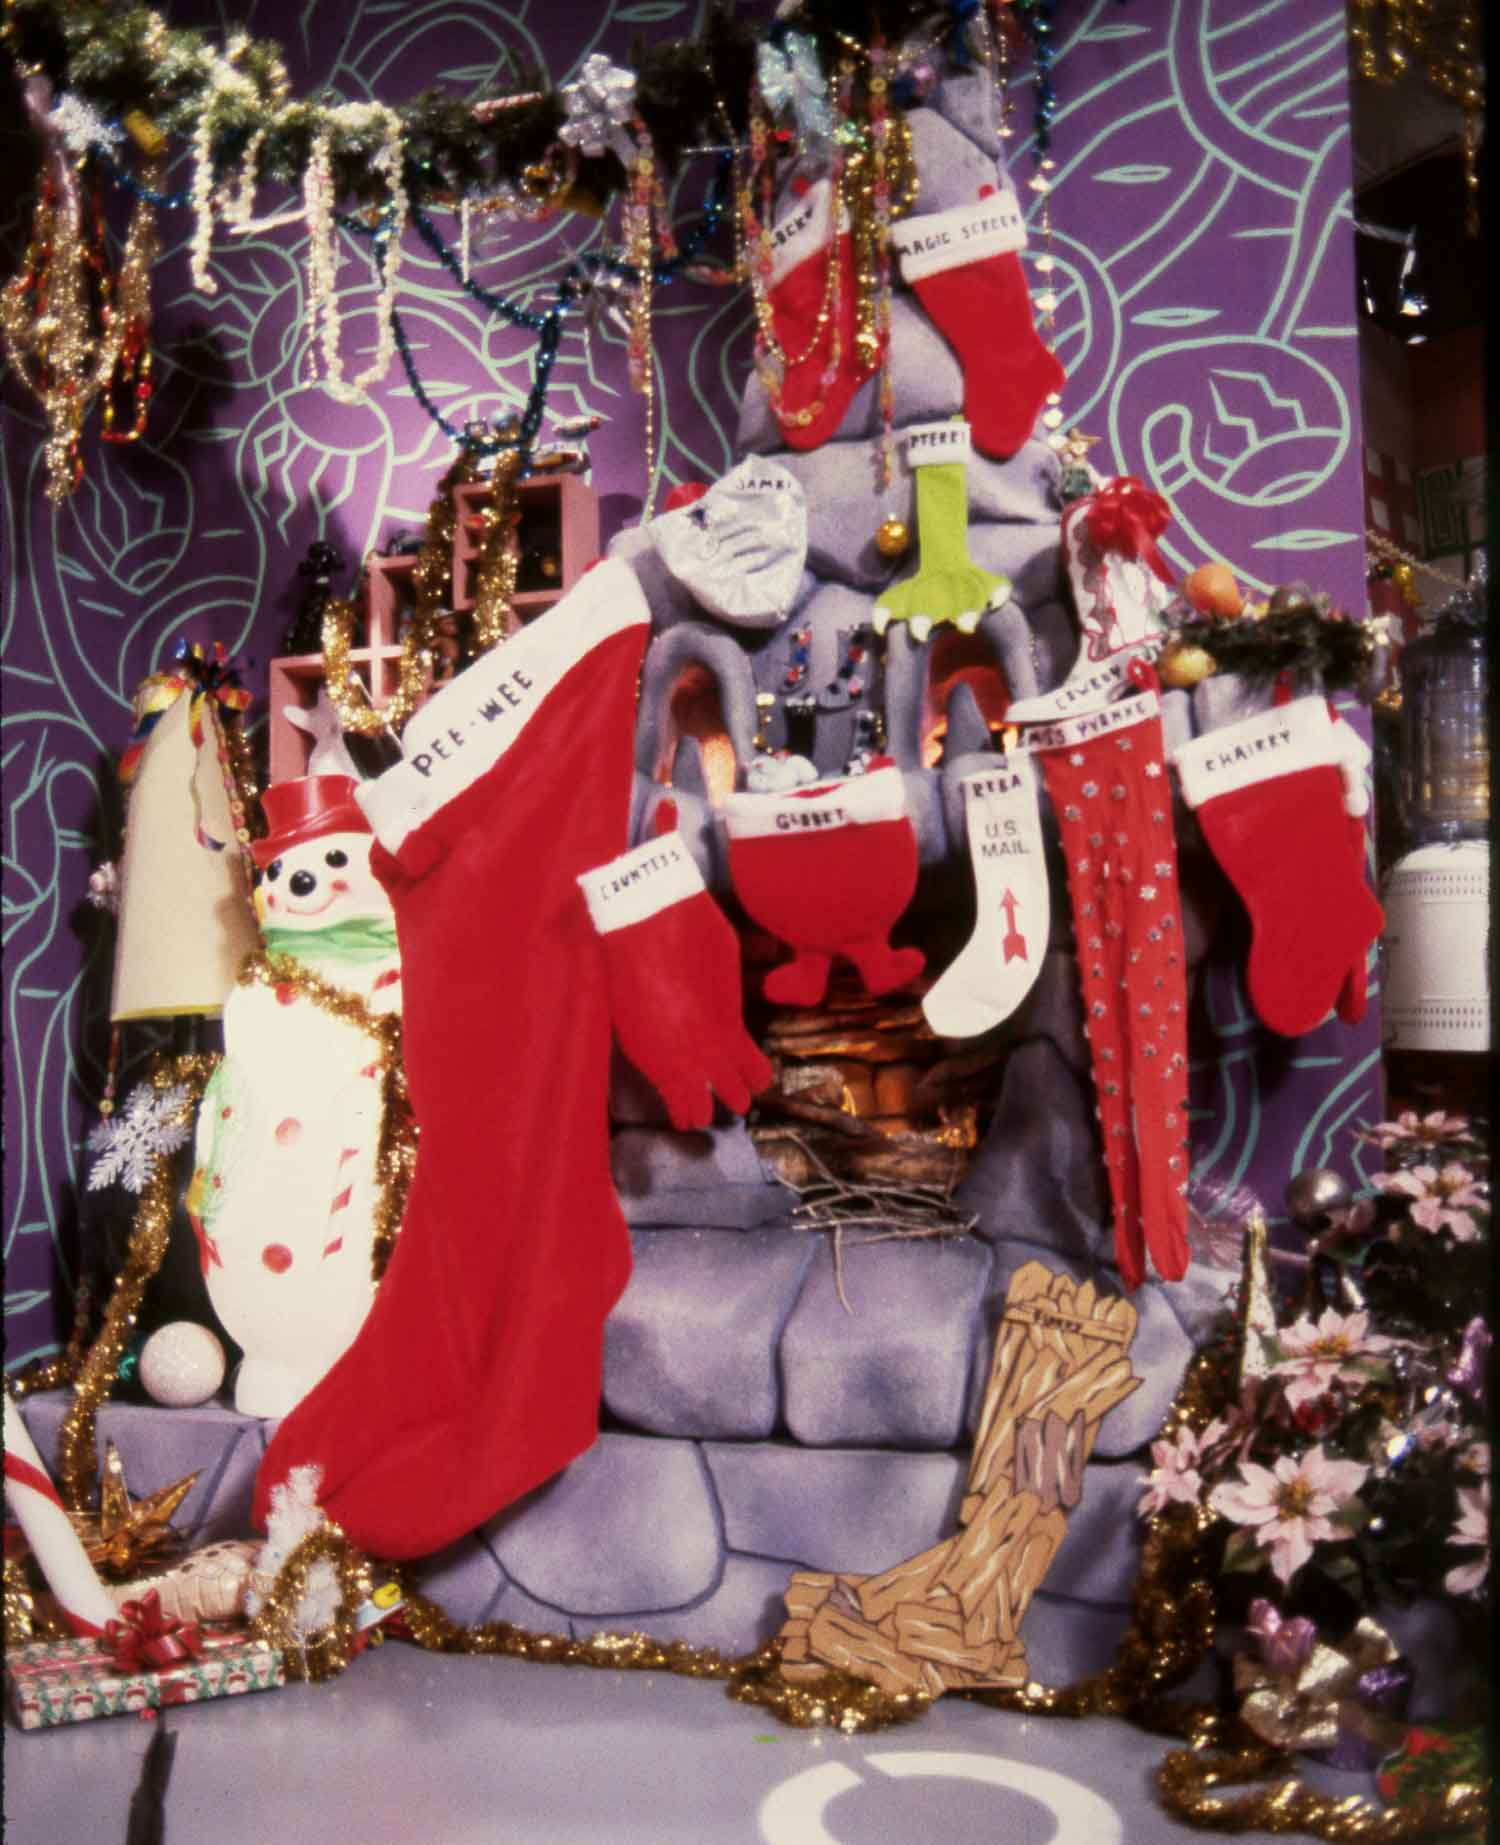 Playhouse characters Christmas stockings